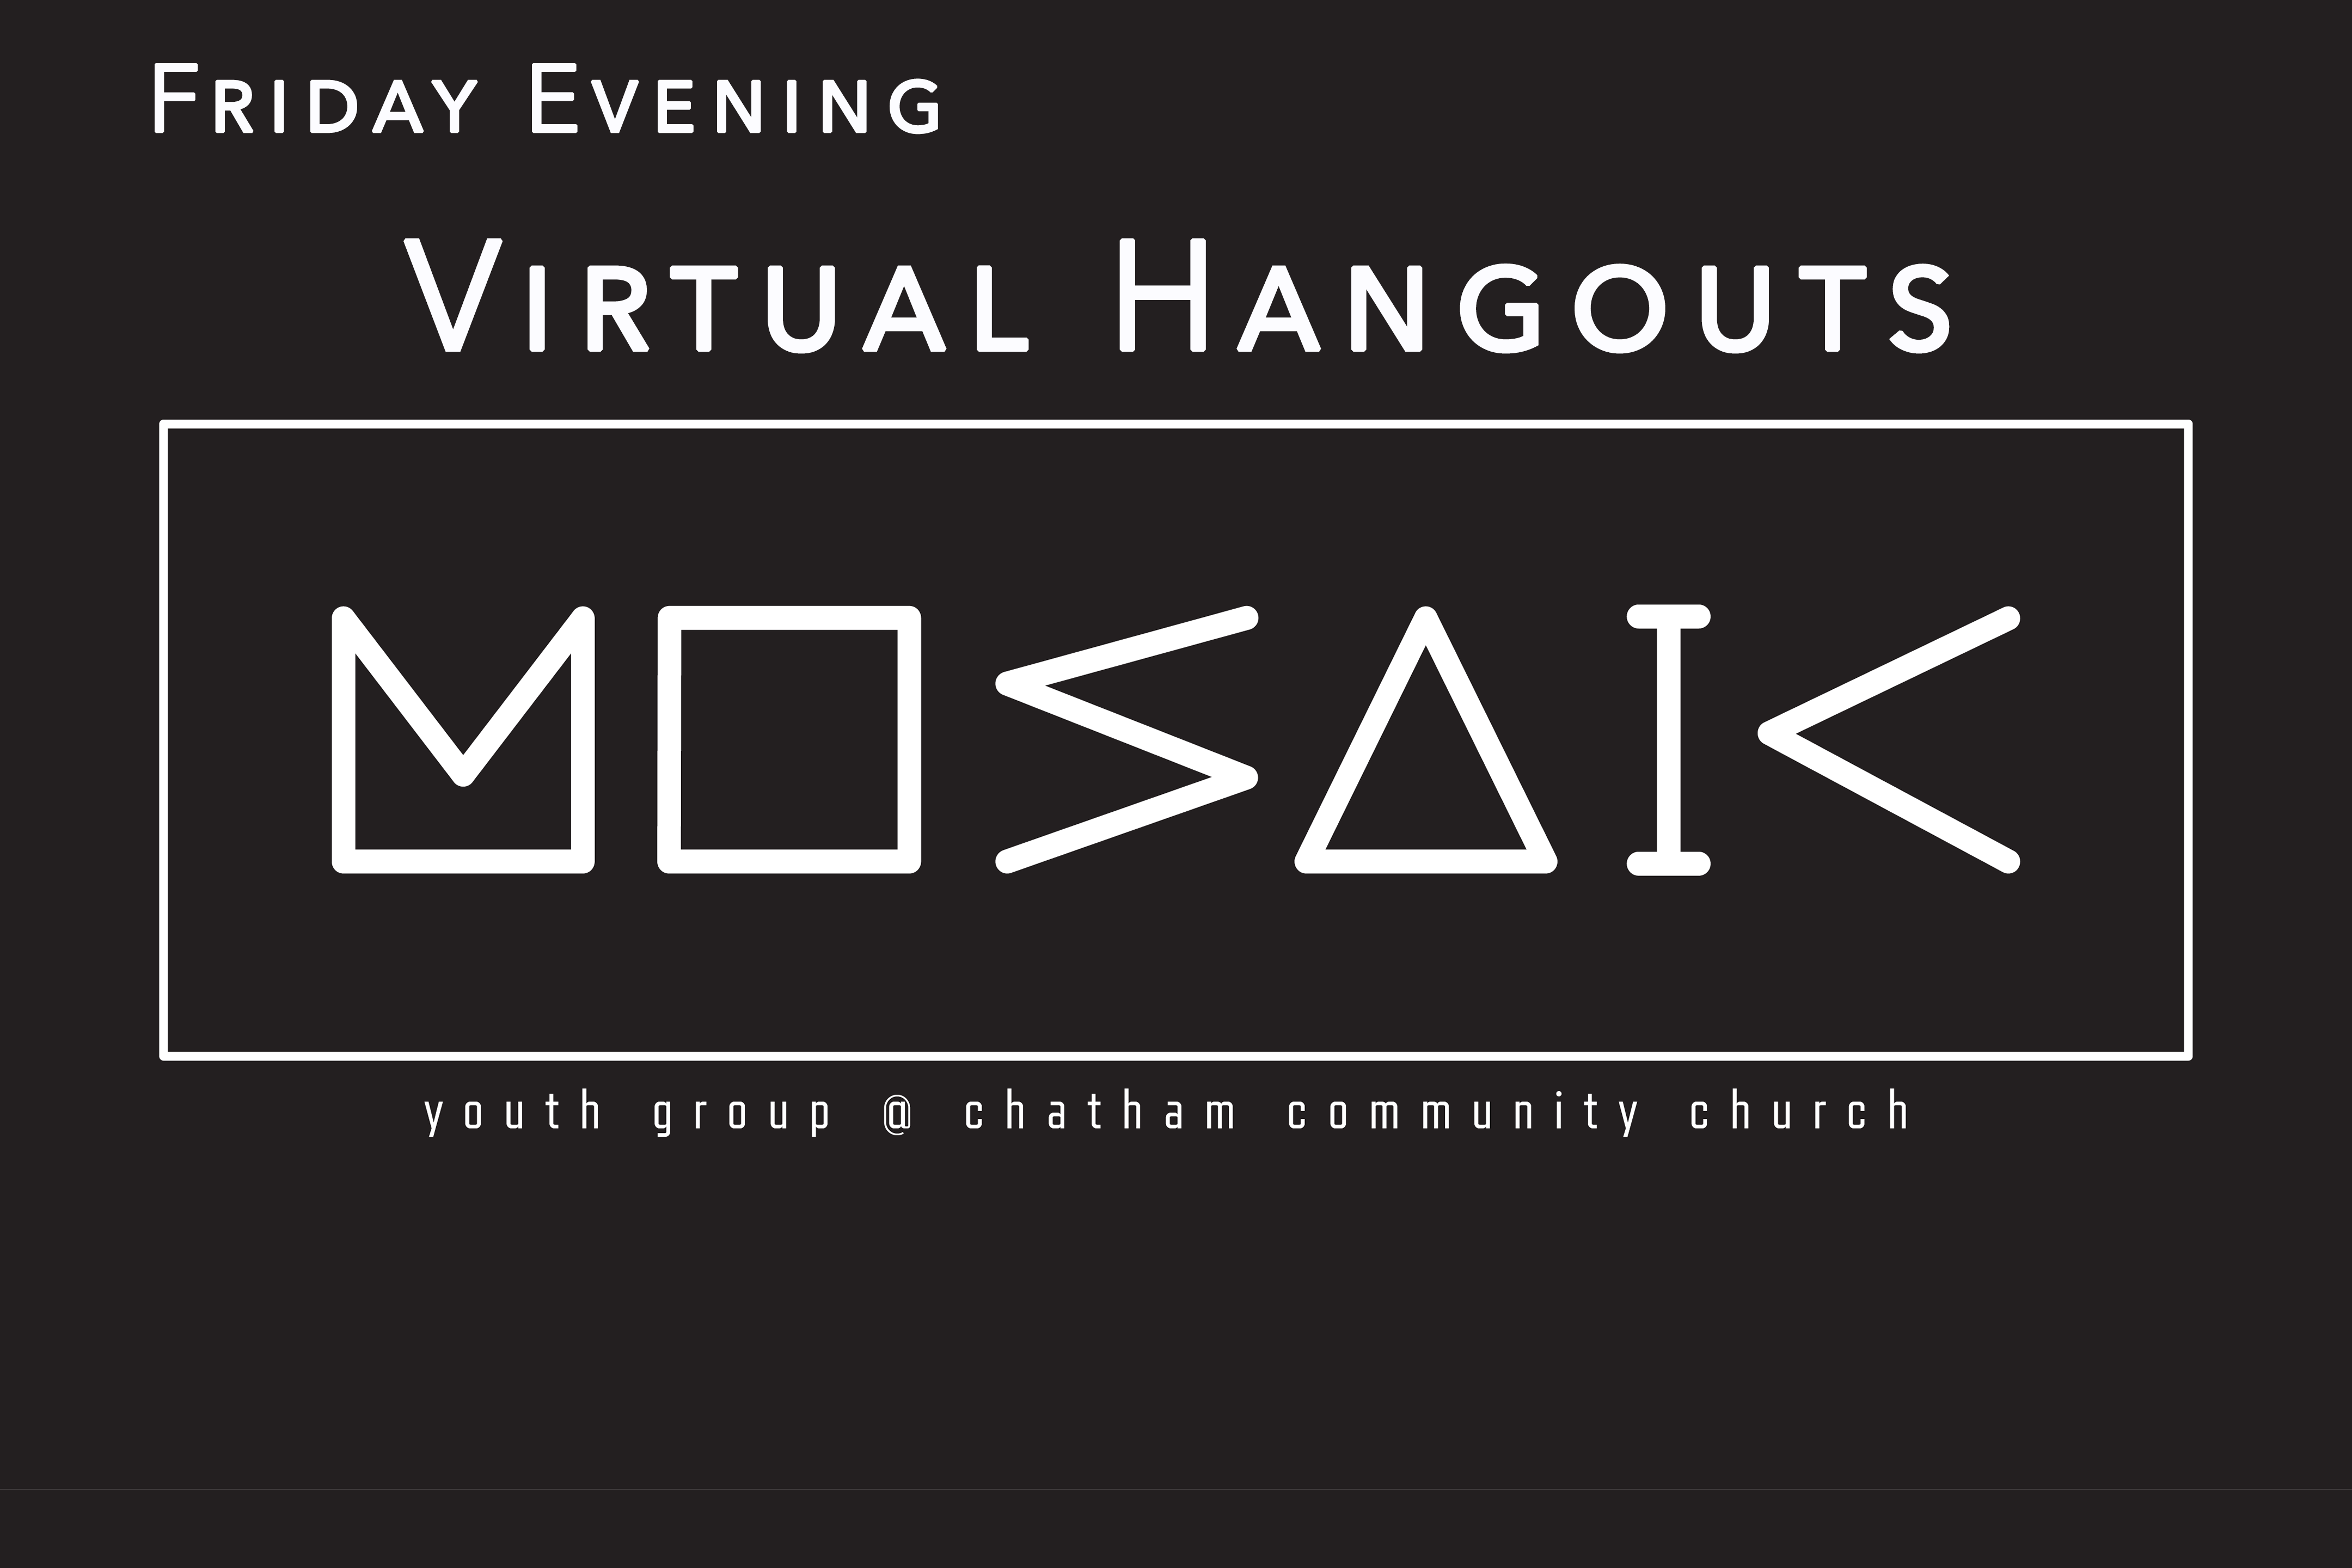 Mosaic Virtual Hangouts website event